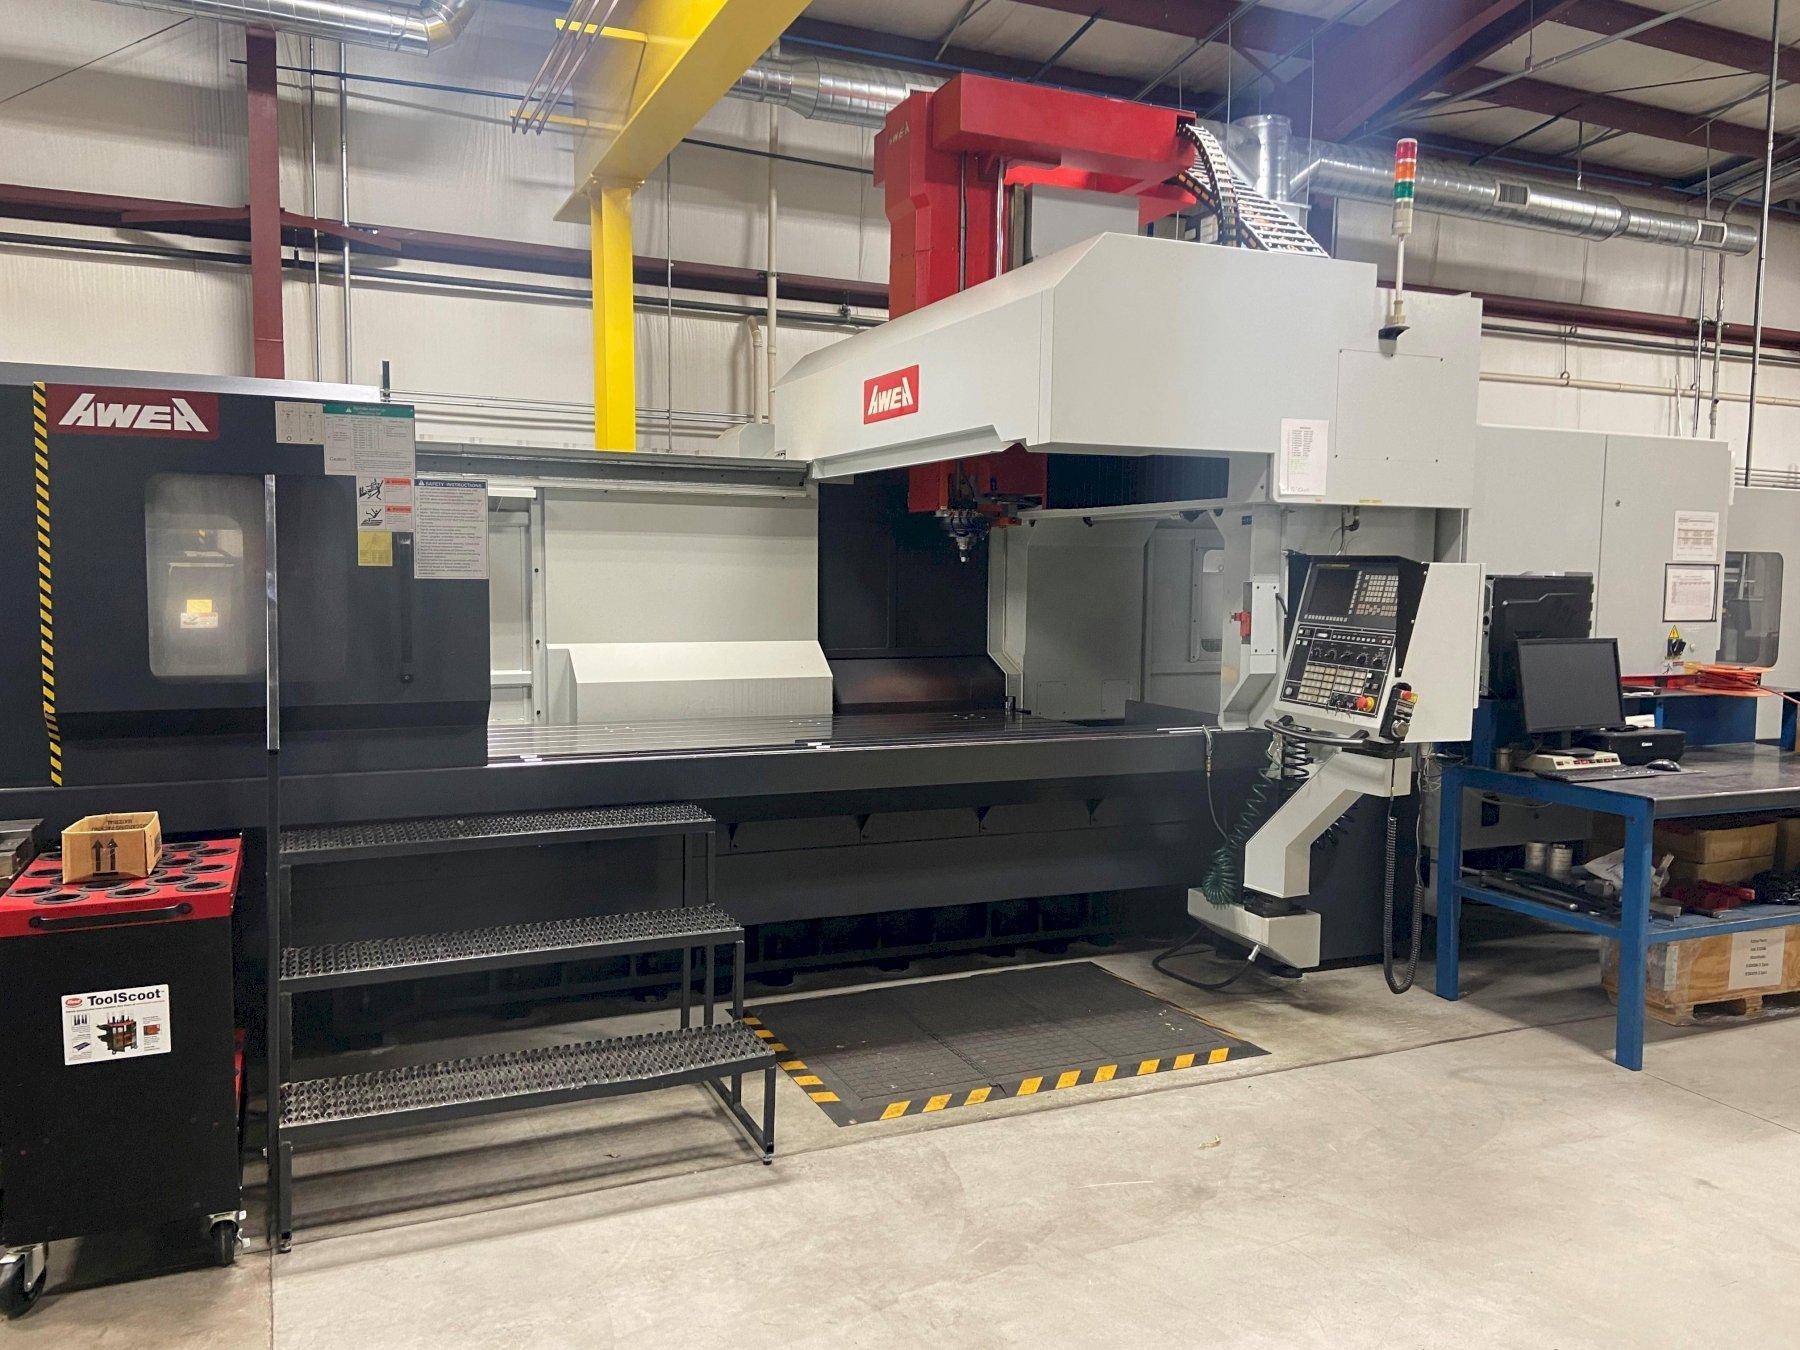 Awea SP-3016 CNC Bridge Style Vertical Machining Center